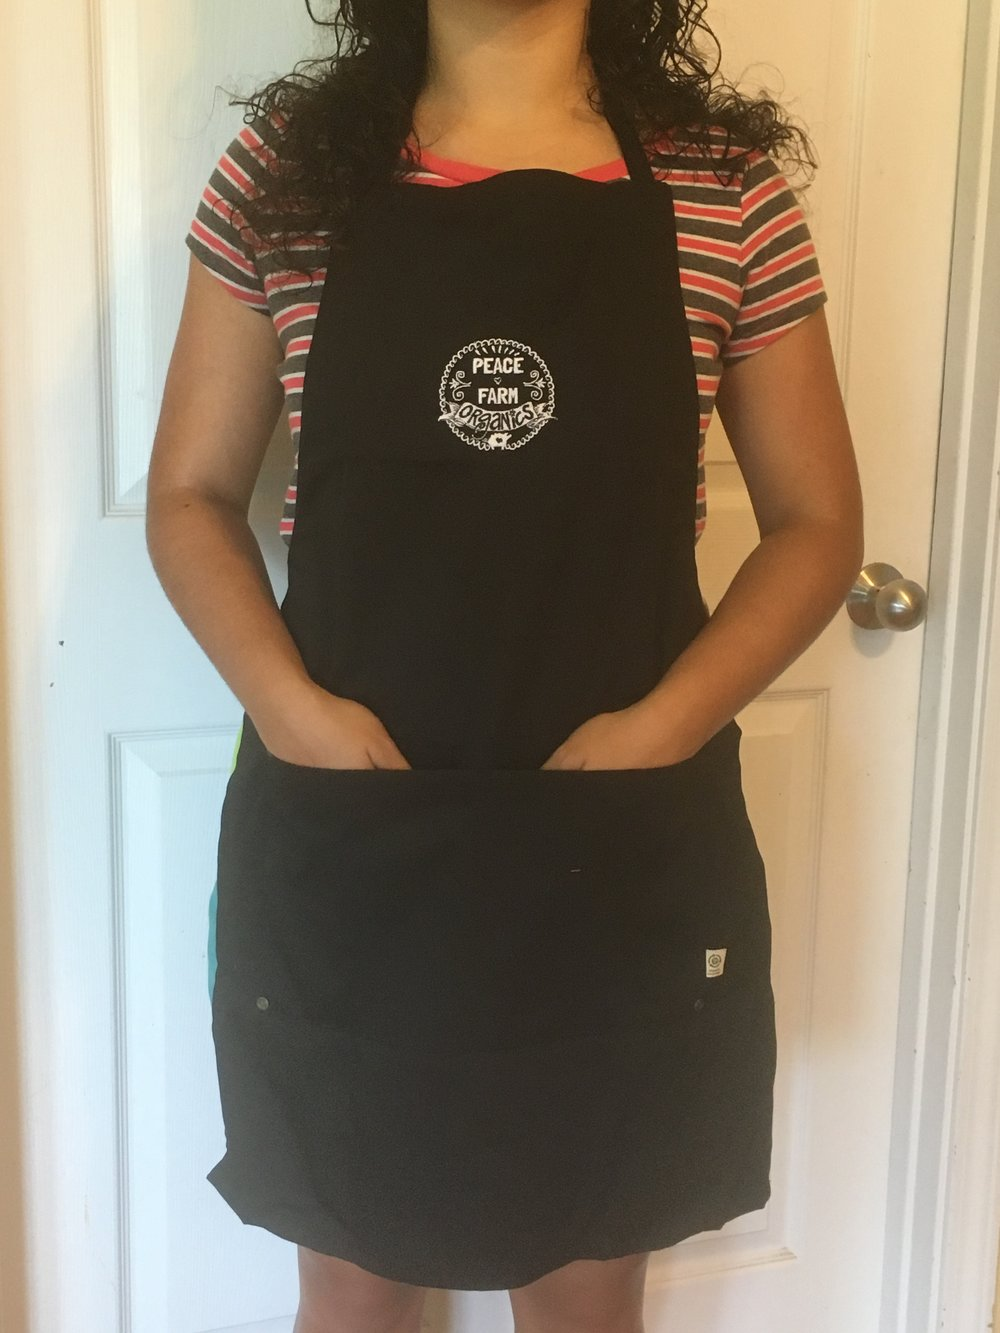 Peace Farm Apron - $28.99